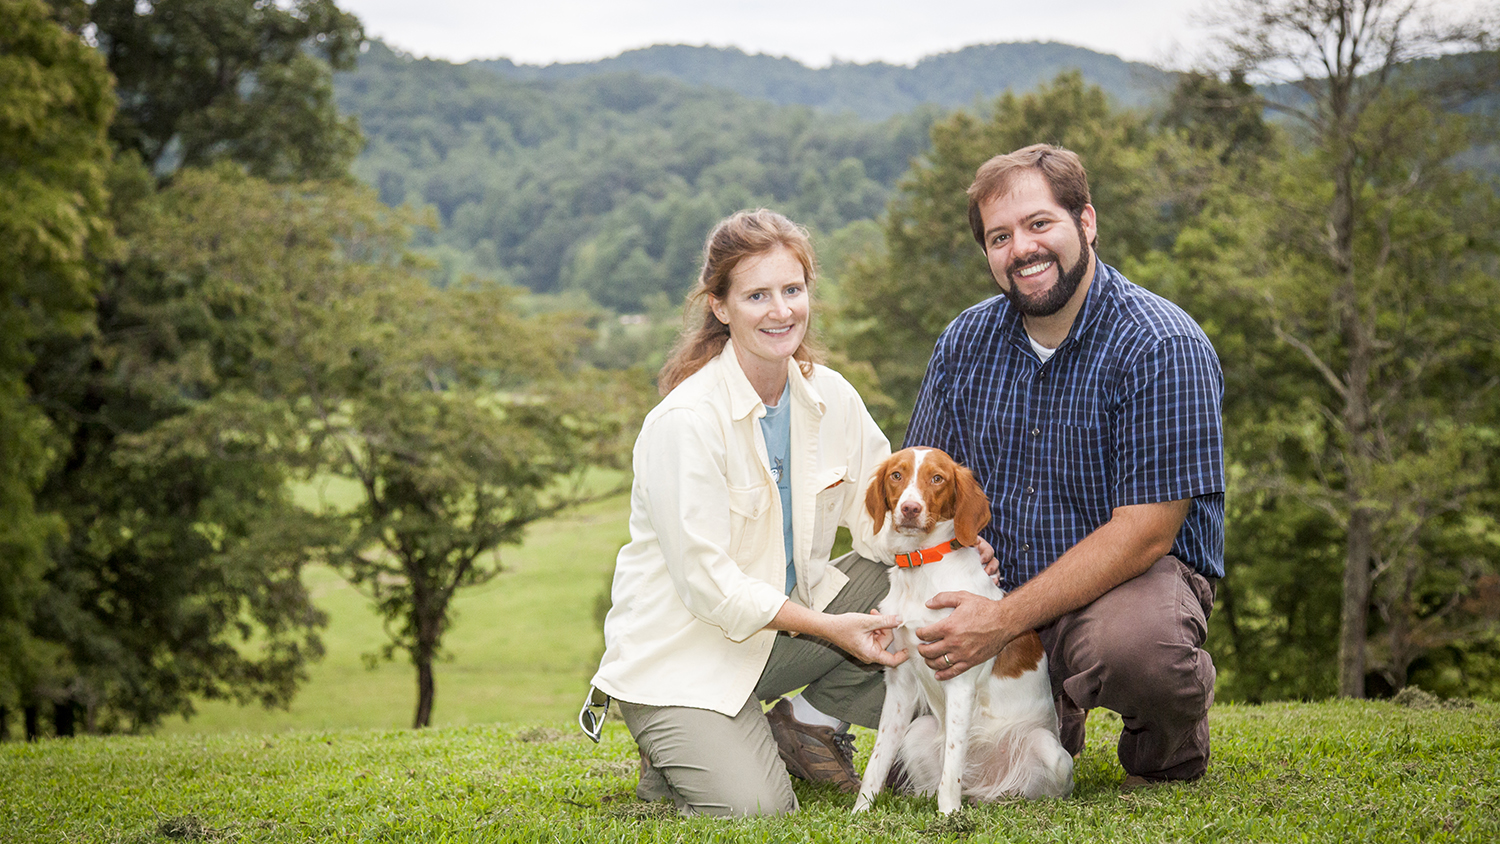 Brittany Whitmire and Andy von Canon with their dog on their farm.